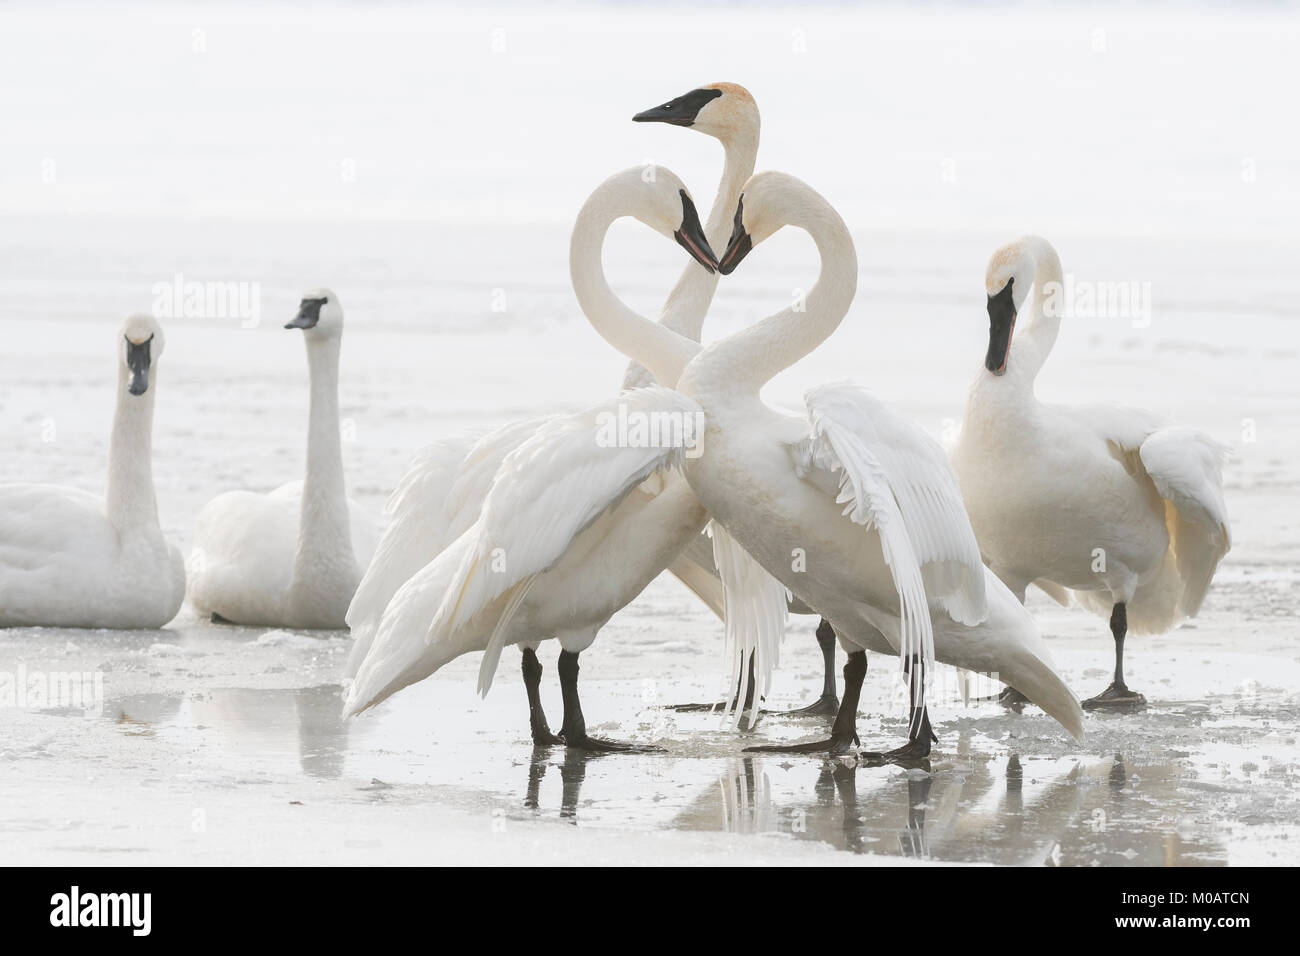 Trumpeter swans (Cygnus buccinator), St. Croix River between Minnesota & Wisconsin. Hudson, WI, USA, by Dominique Stock Photo